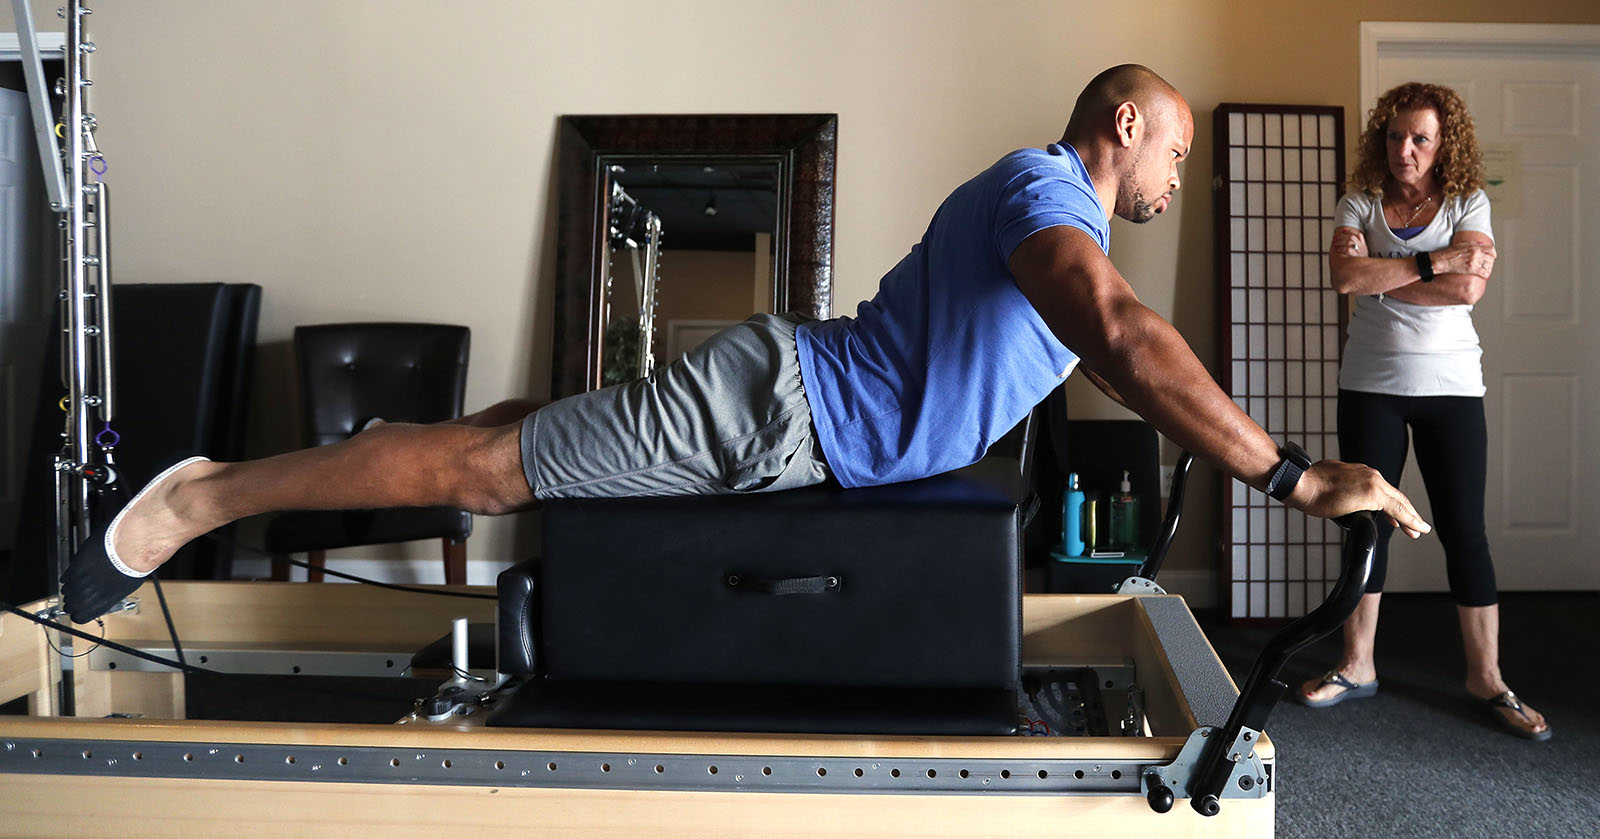 Buffalo Bills LB Lorenzo Alexander has a pilates session with Judi Donner at Symmetry Pilates Studio in Orchard Park. (Mark Mulville/Buffalo News)